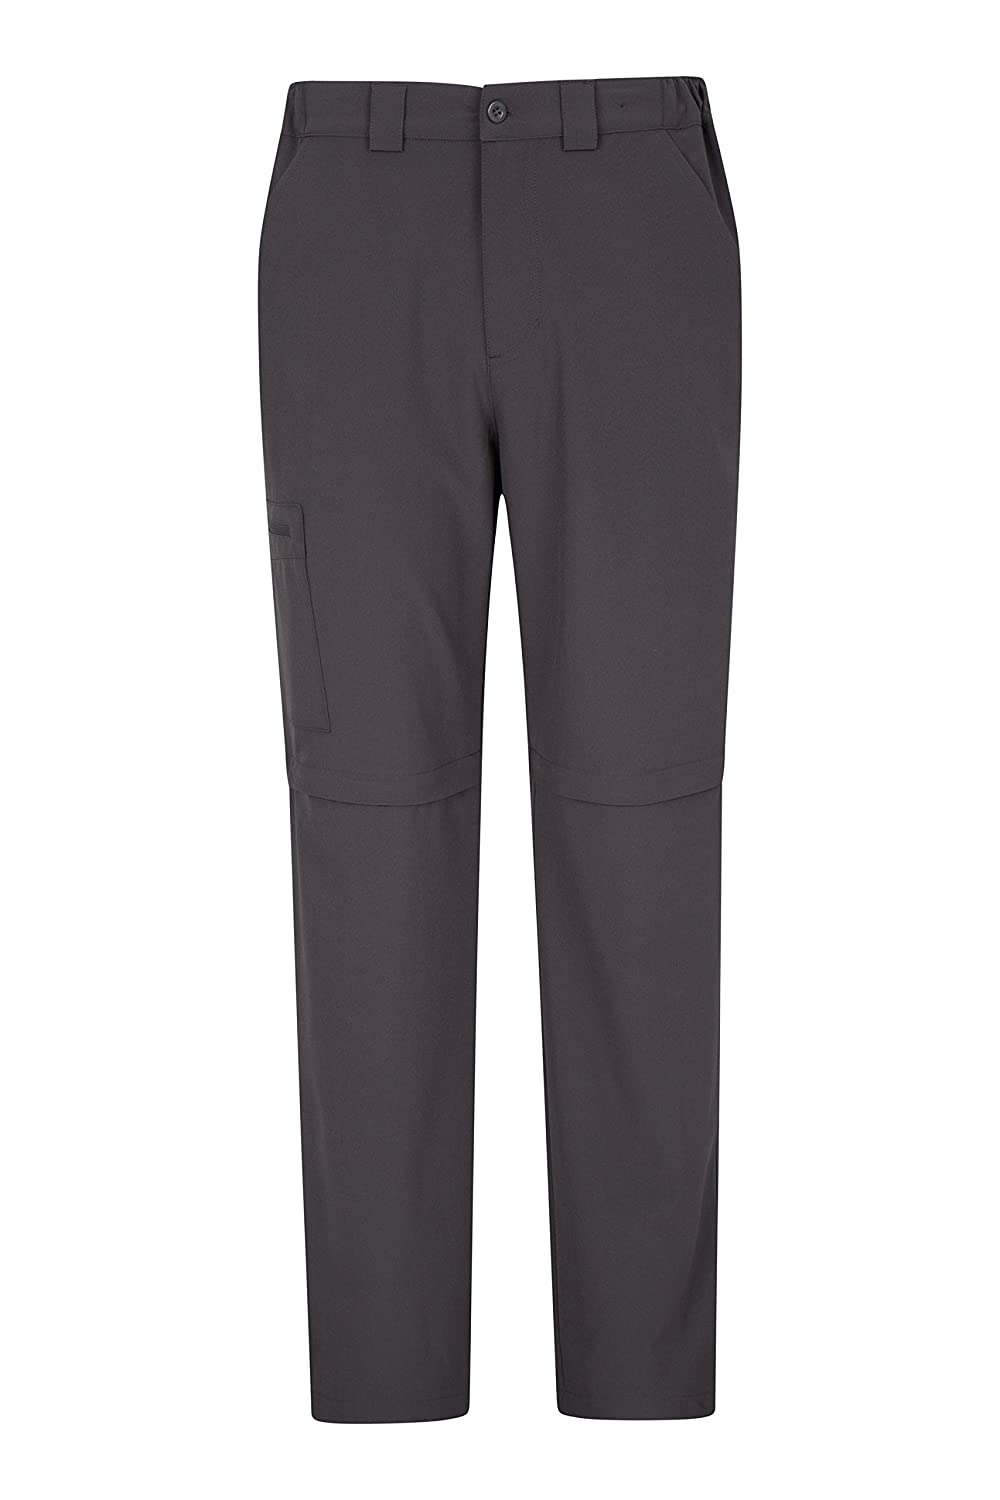 Mountain Warehouse Stride Mens Trousers - Casual, UPF50+ Summer Pants